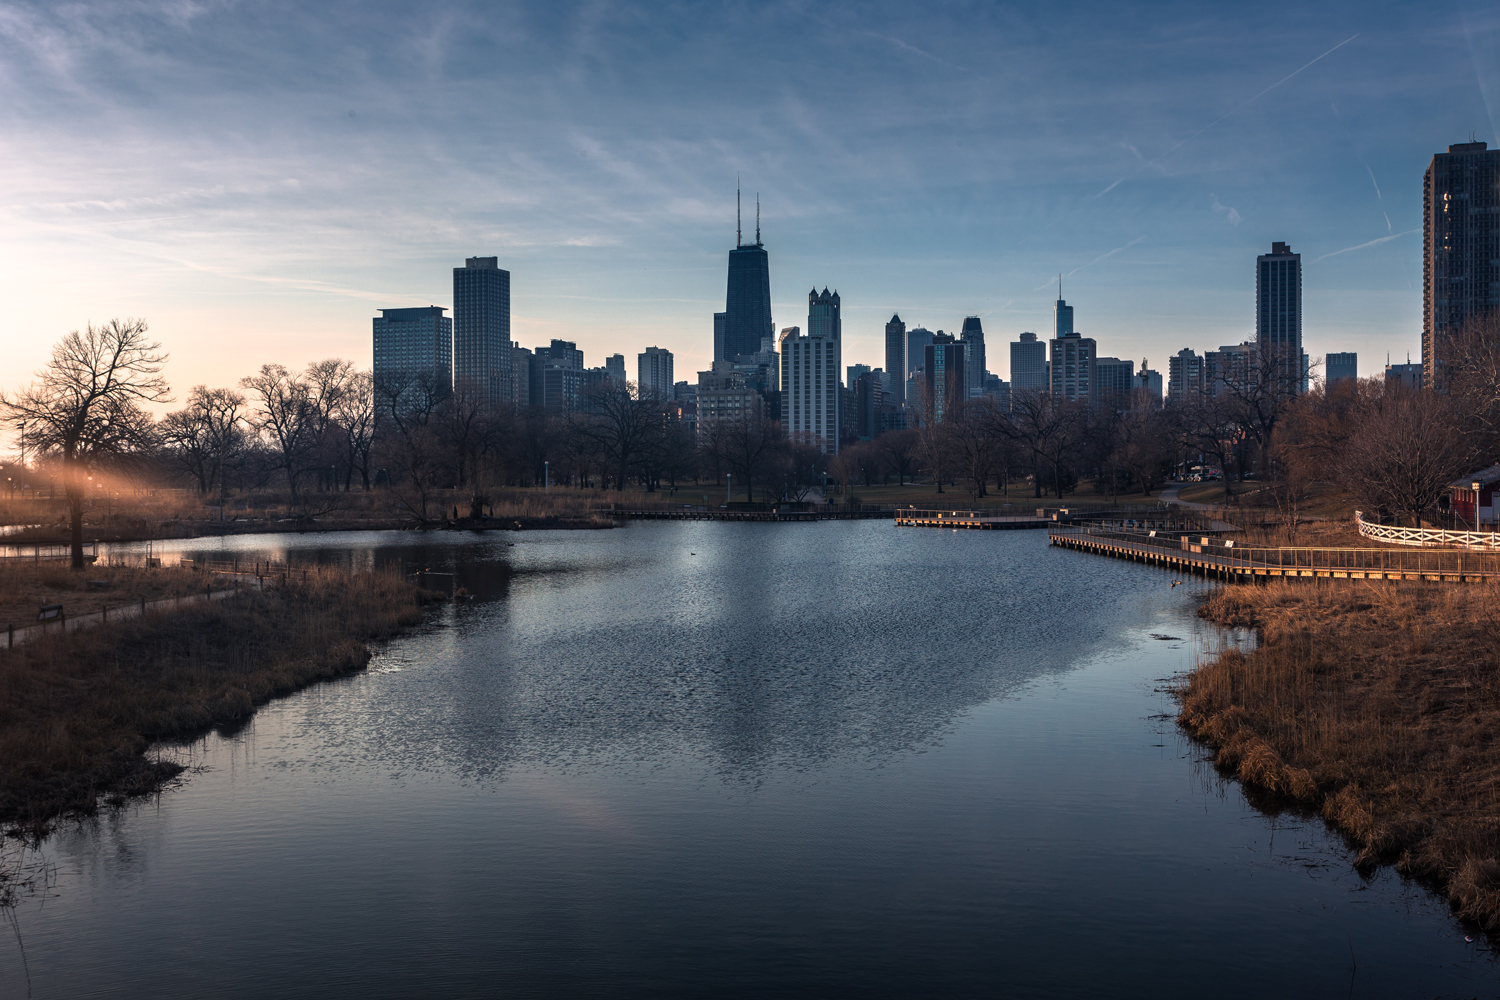 Morning in Lincoln Park